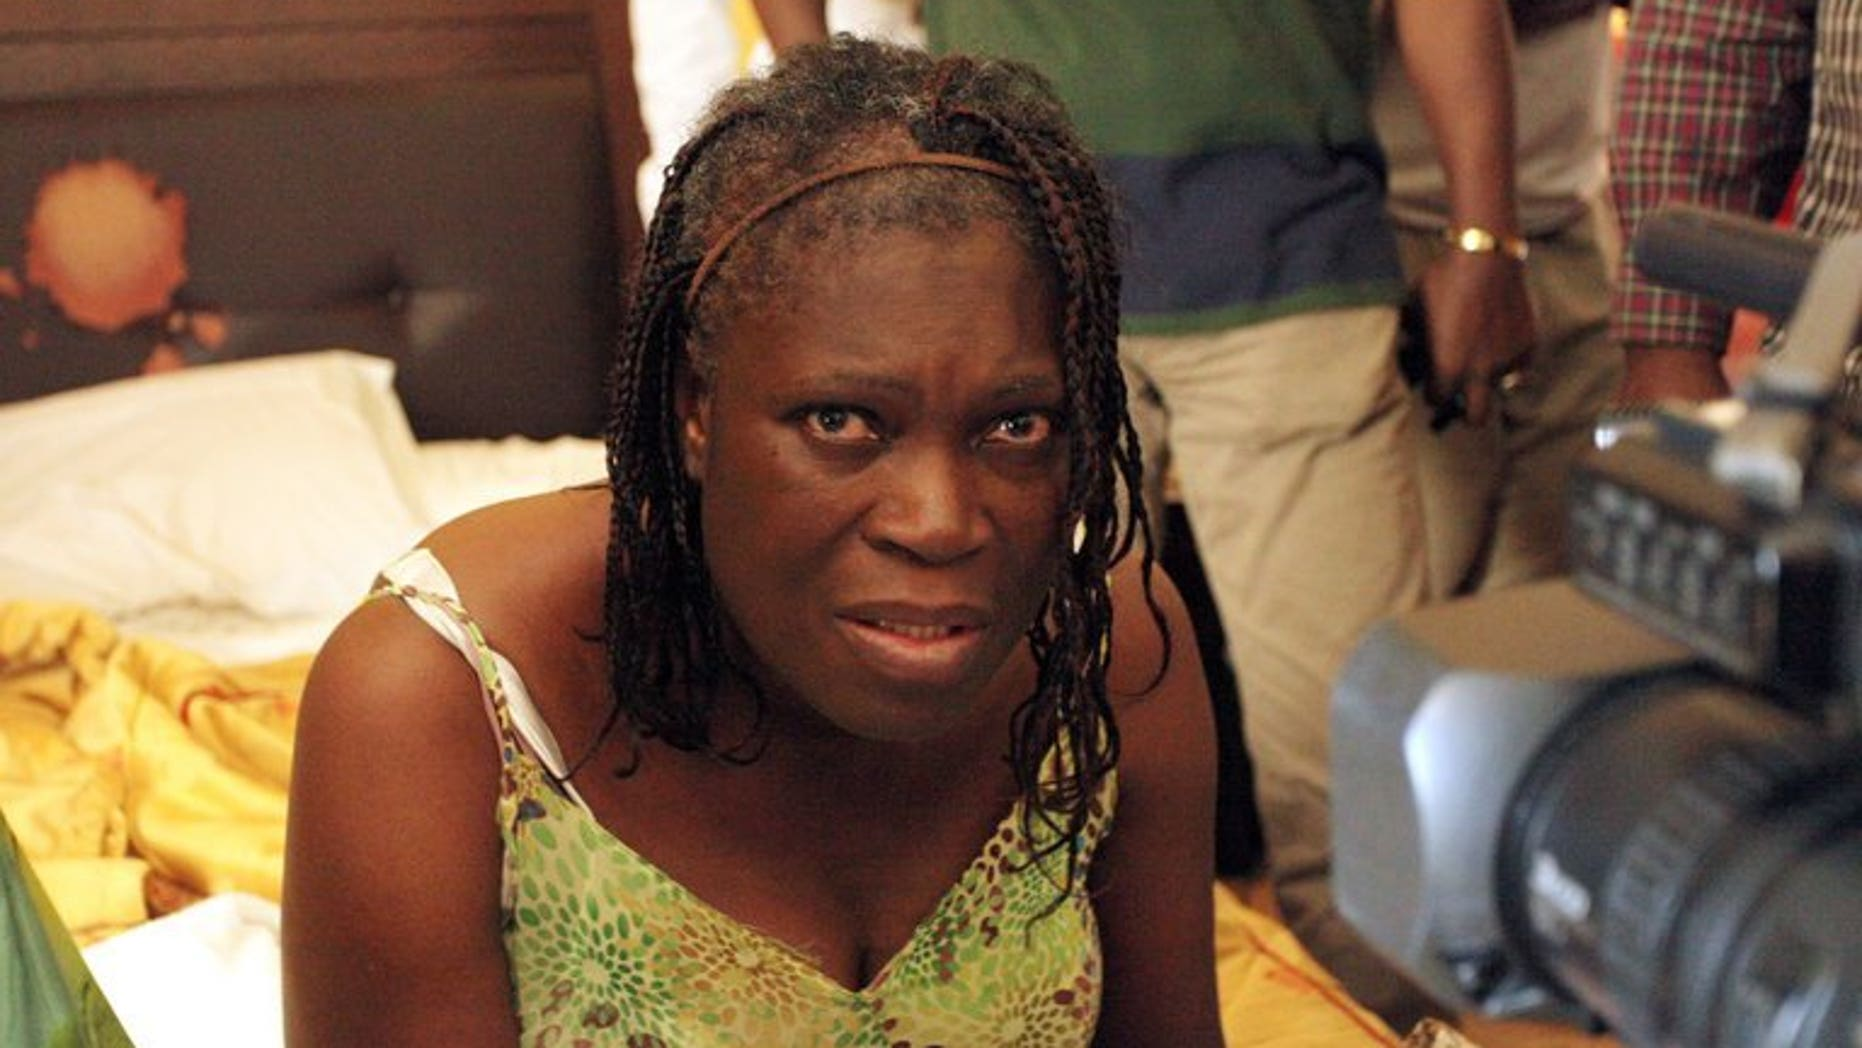 Simone Gbagbo, pictured on April 11, 2011, in Abidjan. Ivory Coast has decided not to transfer the former first lady to the International Criminal Court, which issued a warrant last year for suspected crimes against humanity.